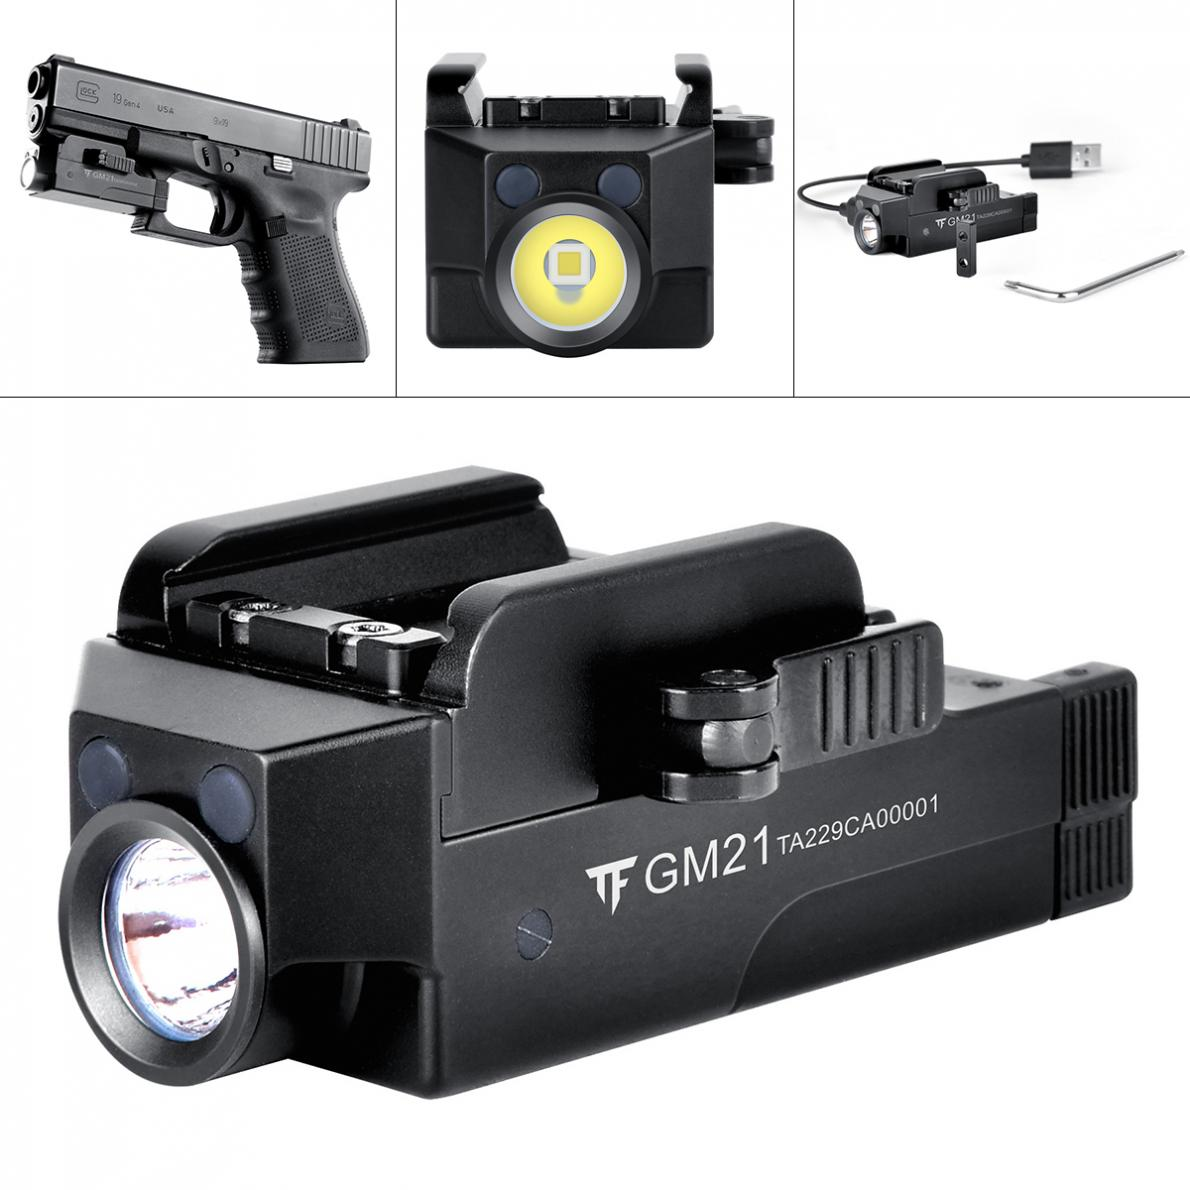 Trust Fire GM21 510 Lumens IPX6 Tactical Flashlight Military Weapon Lights with Micro USB Port and Built-in Battery